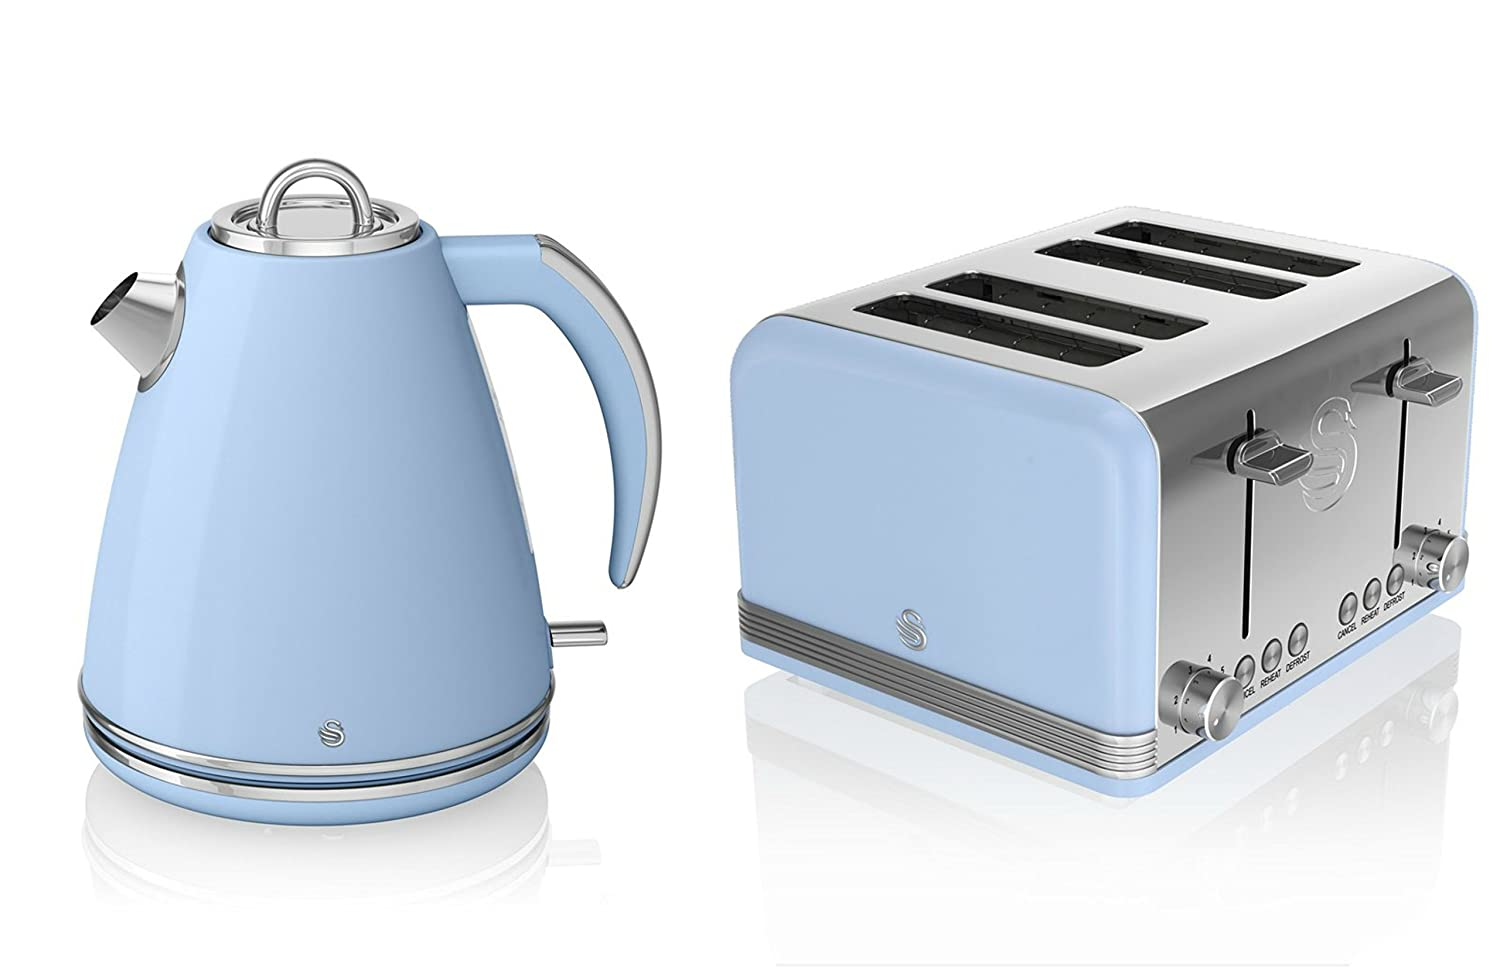 Swan Kitchen Appliance Retro Set - Blue 1.5 Litre Jug Kettle & Blue Modern 4 Slice Toaster Set